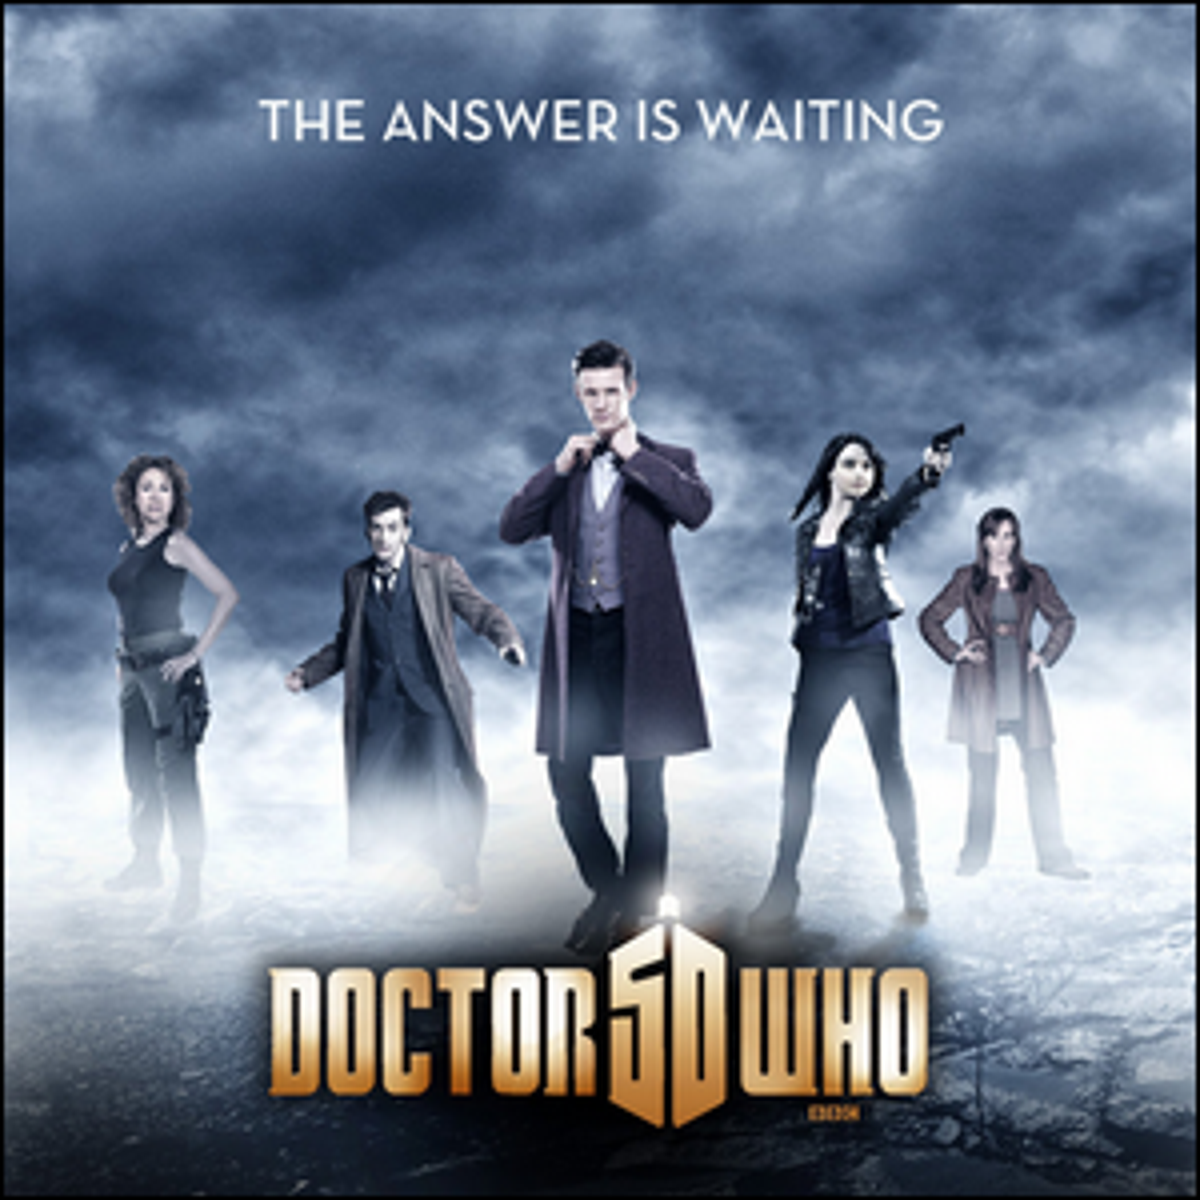 A promotional poster for the 50th anniversary broadcast of Doctor Who.